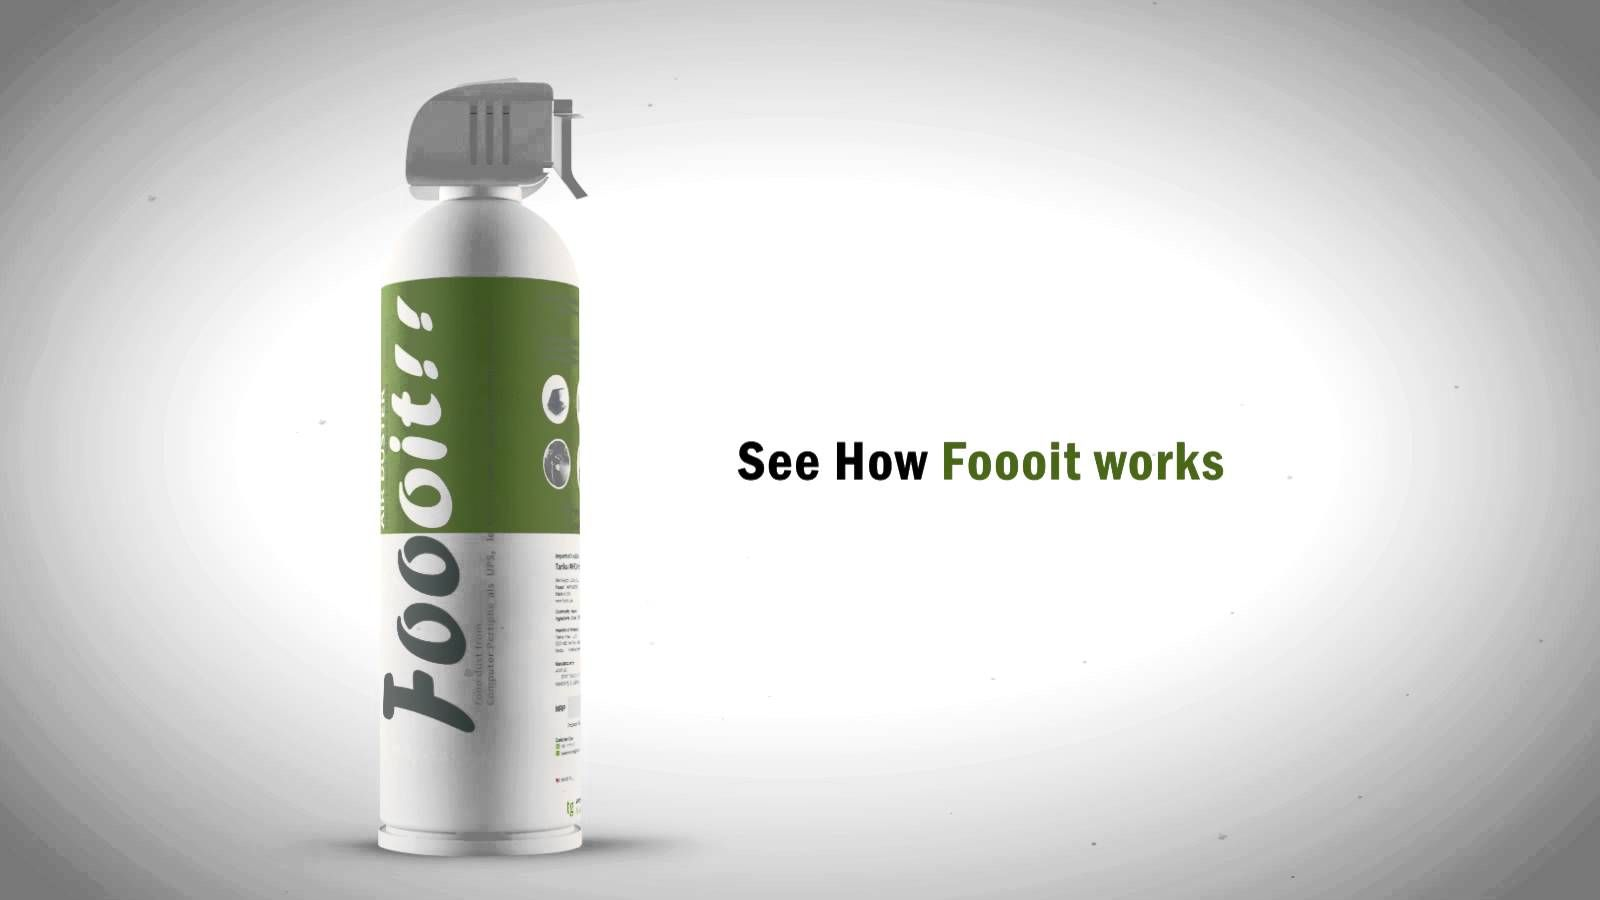 This is the big question for every IT hardware expert how to remove dust from computer? But now we have a good answer as foooit. This is the product which resolve all dust related issues. Foooit the best dust remover spray in India. For More Information: http://www.foooit.com info@foooit.com 91-9717912888